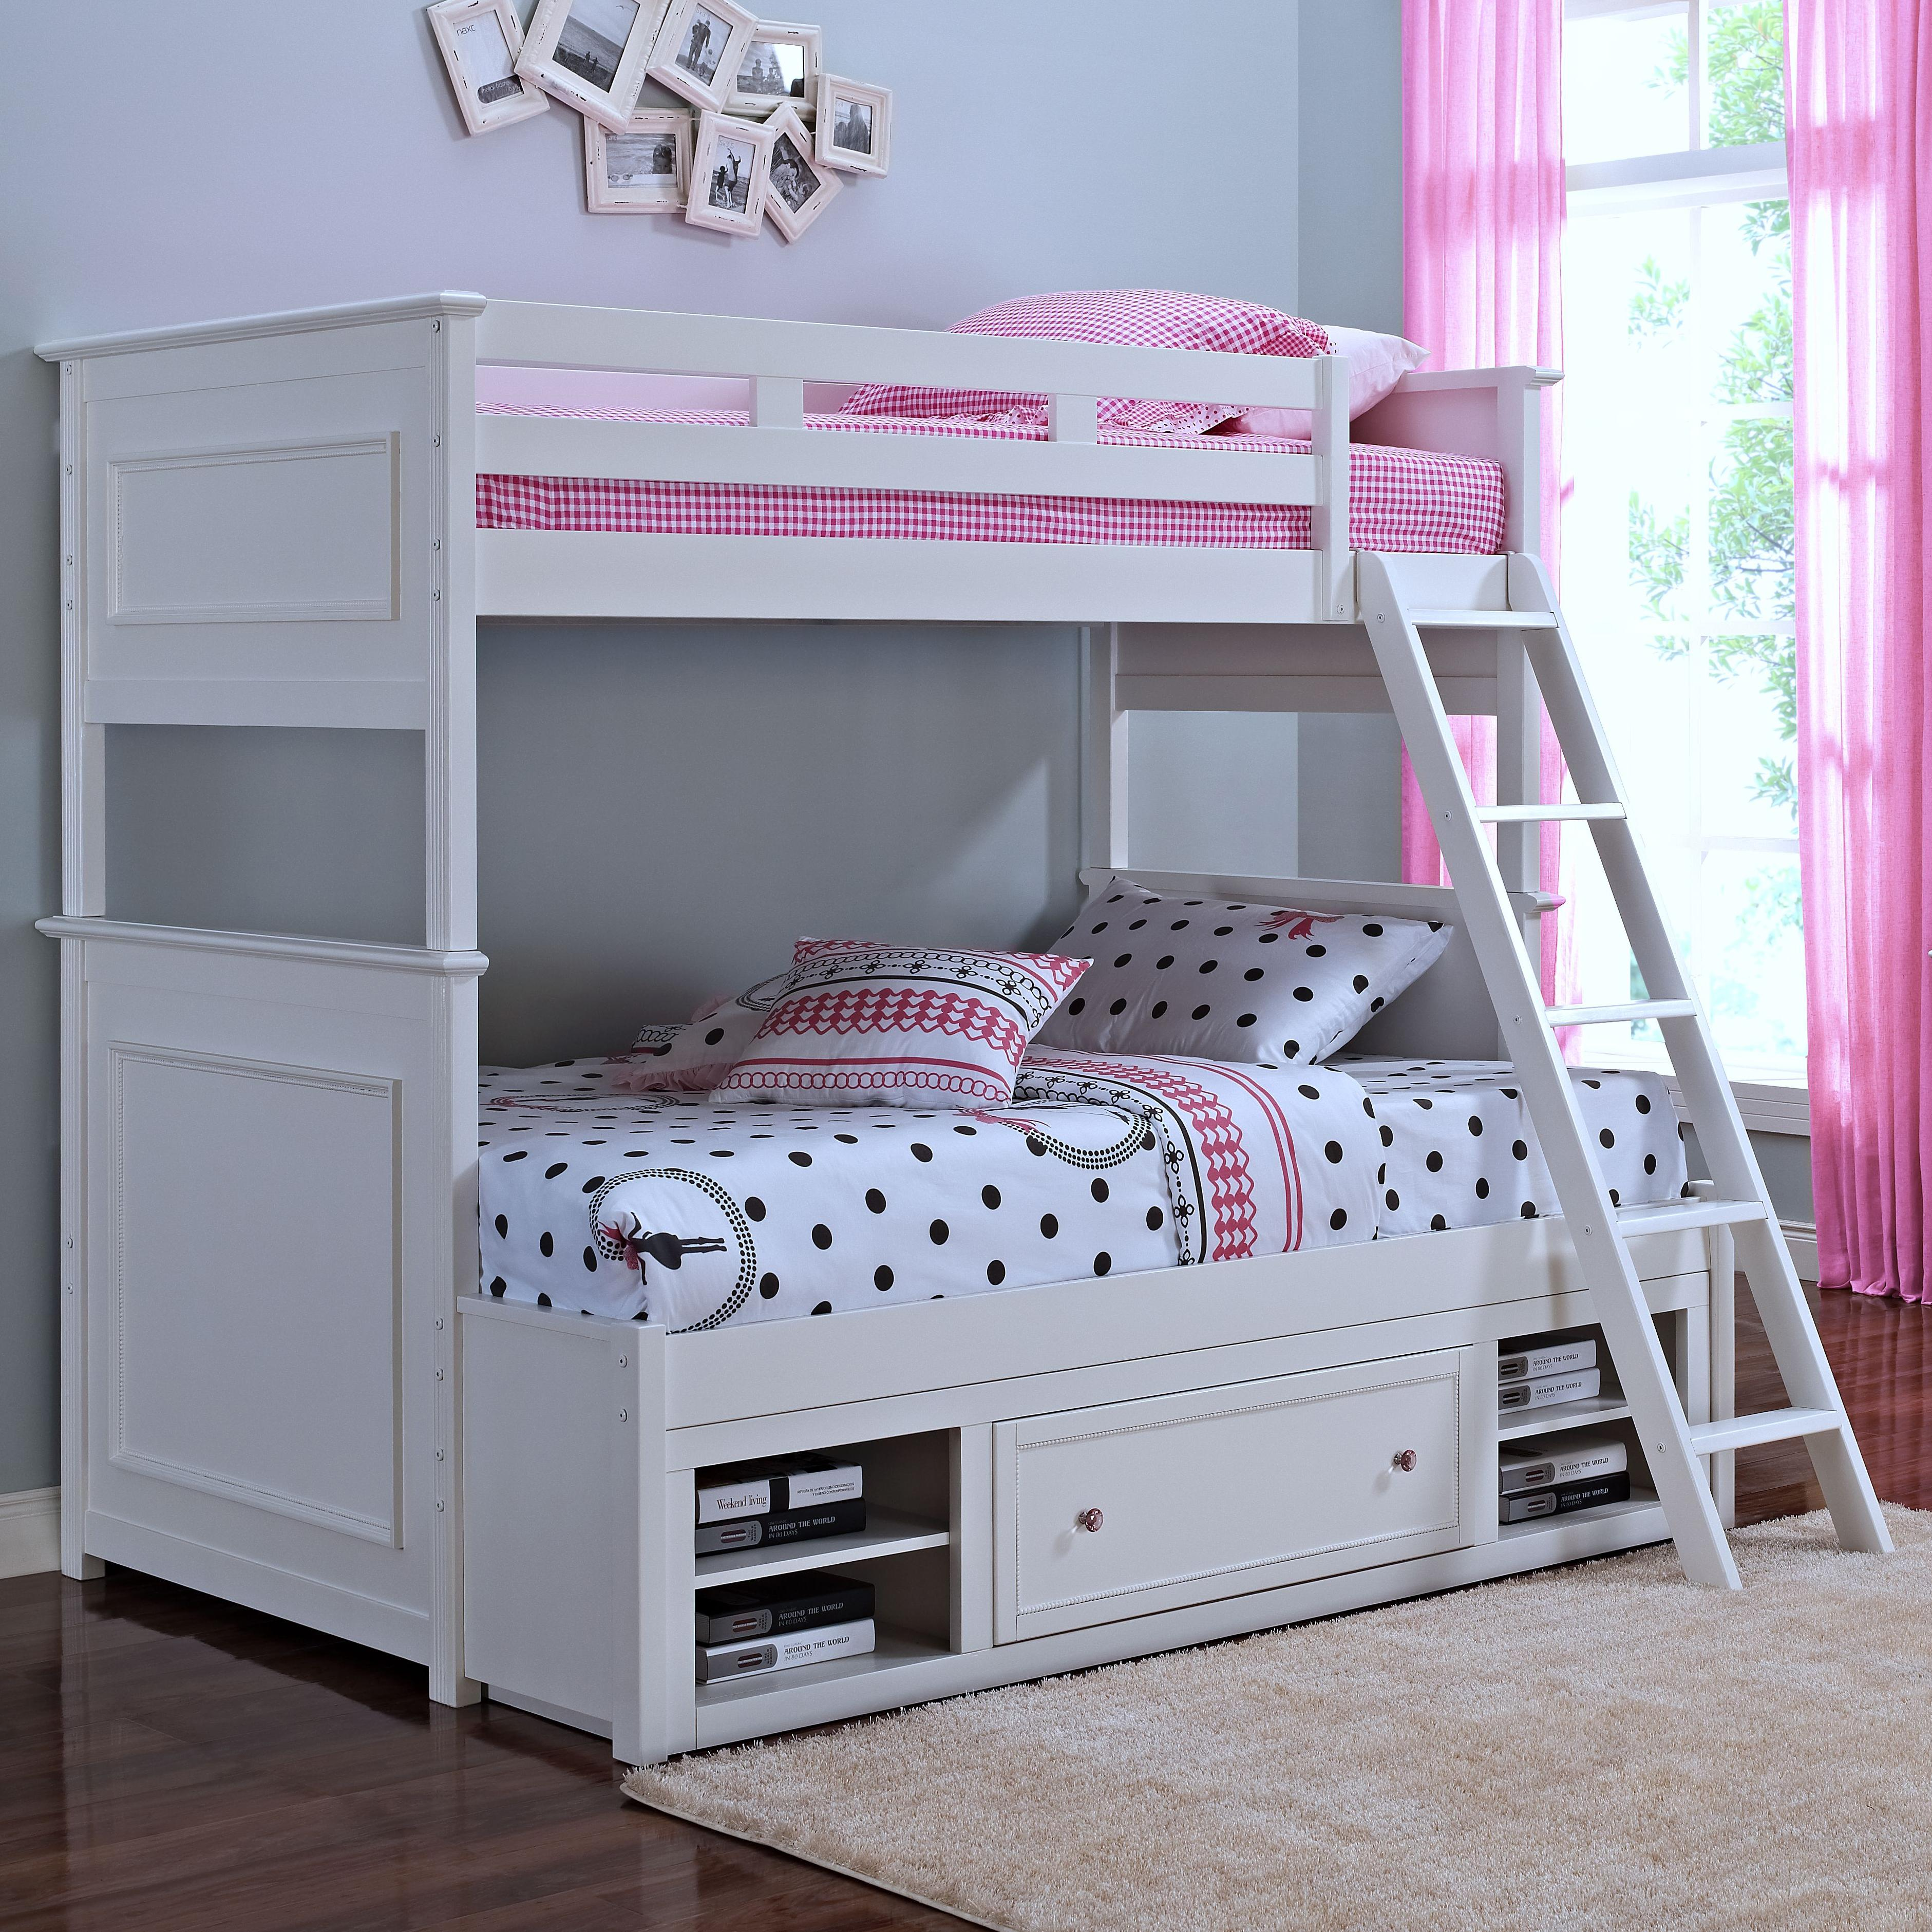 New Classic Megan Twin/Twin Bunk Bed with Storage - Item Number: 05-242-518+538+598